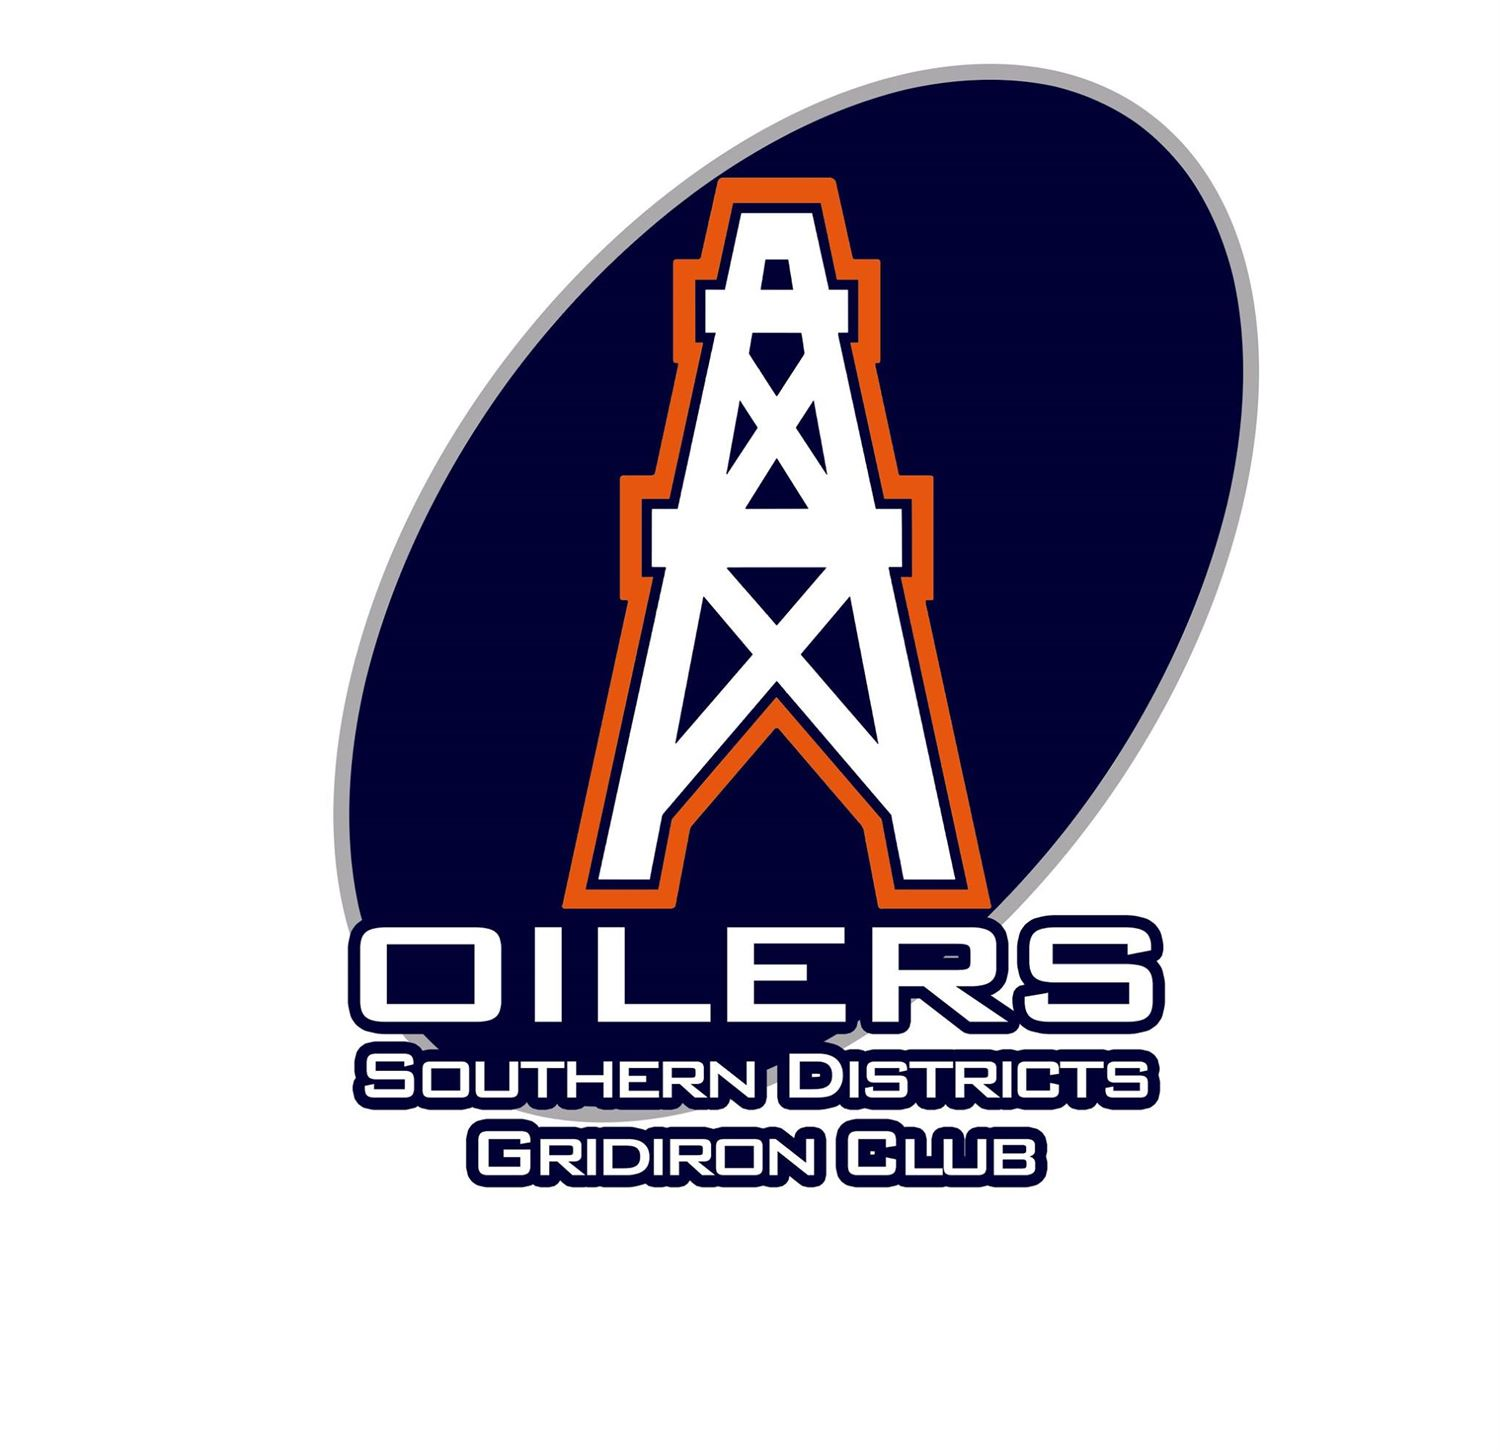 Southern Districts Gridiron Club - Oilers